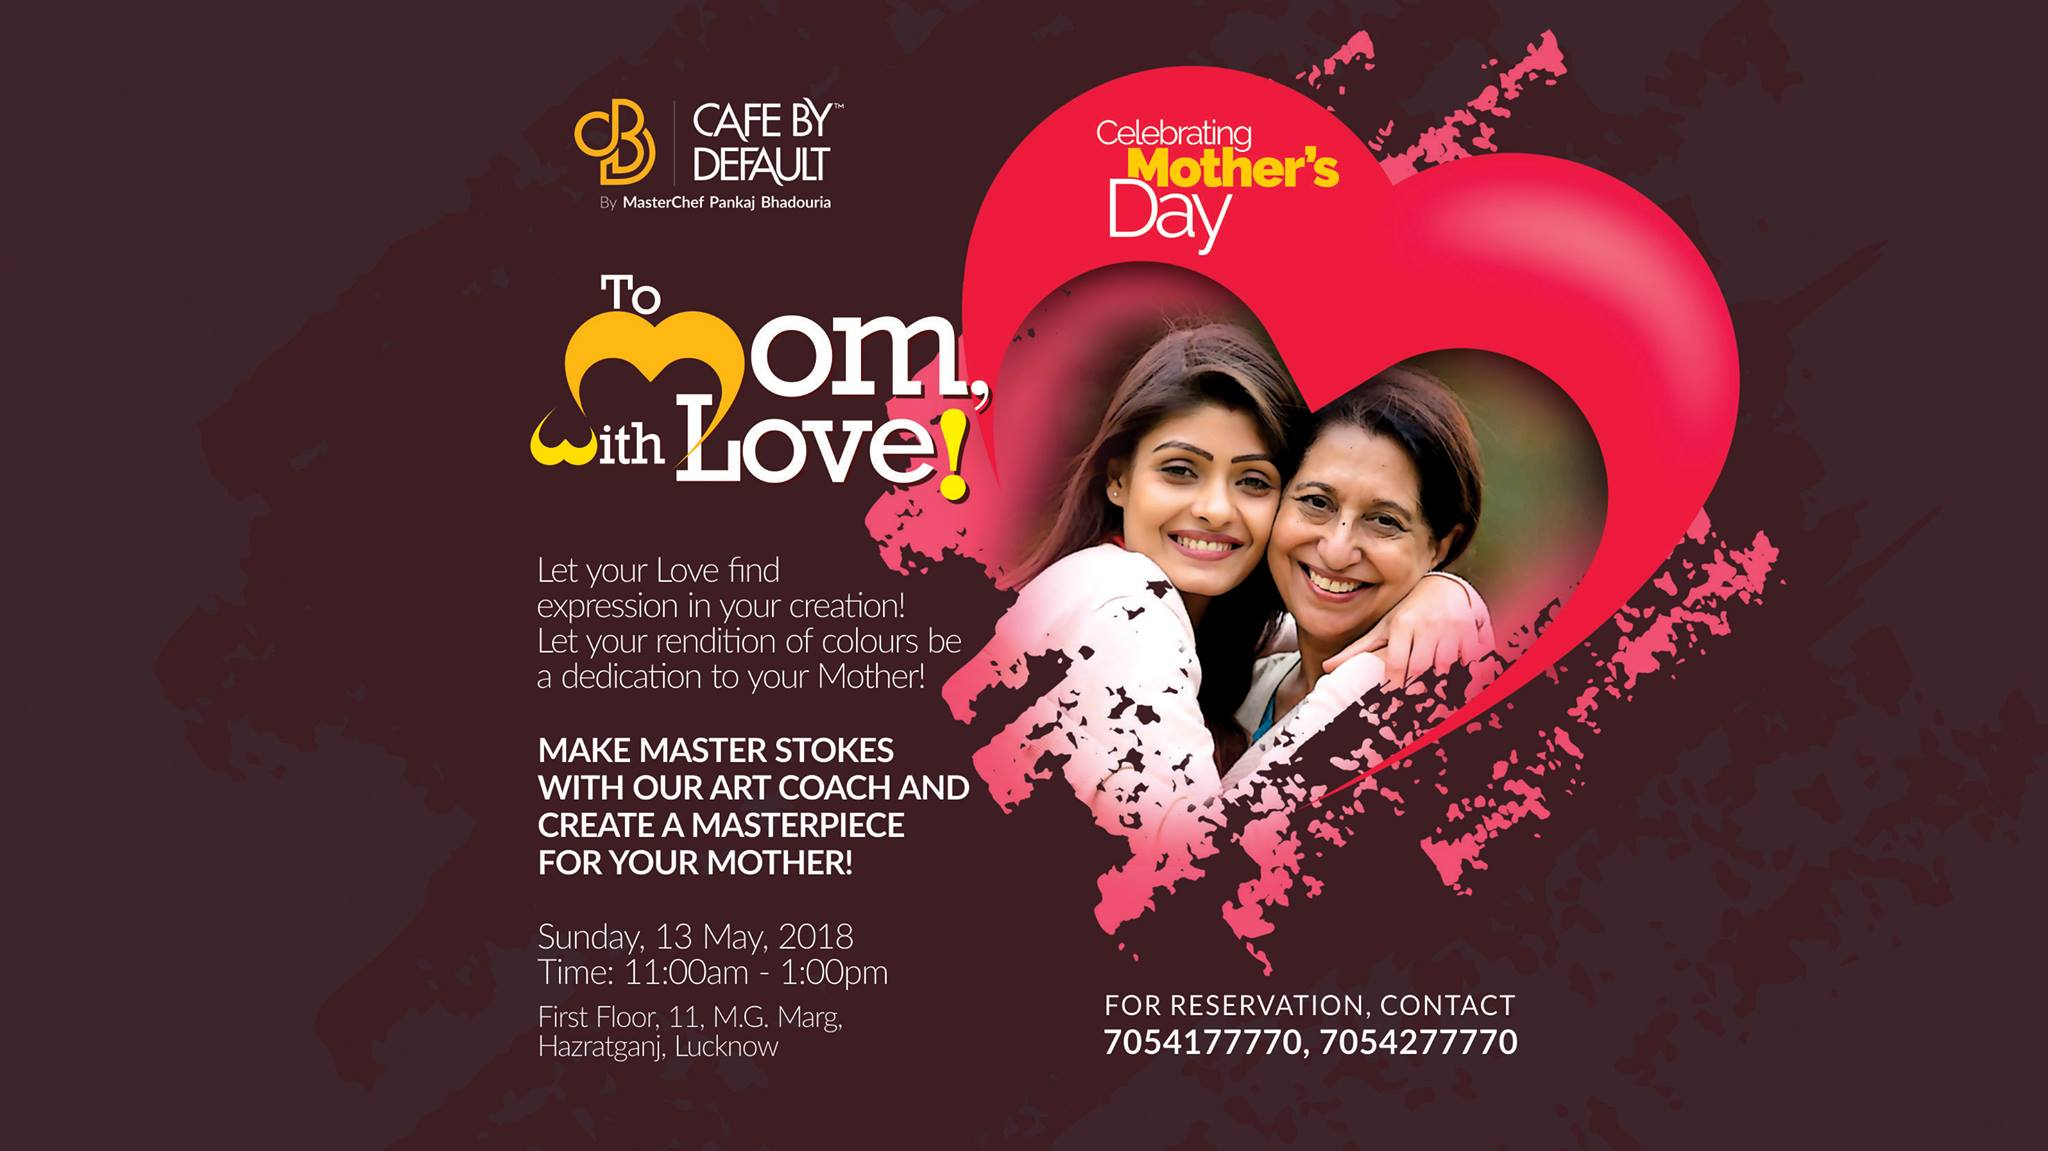 To Mom, With Love ! - CBD event